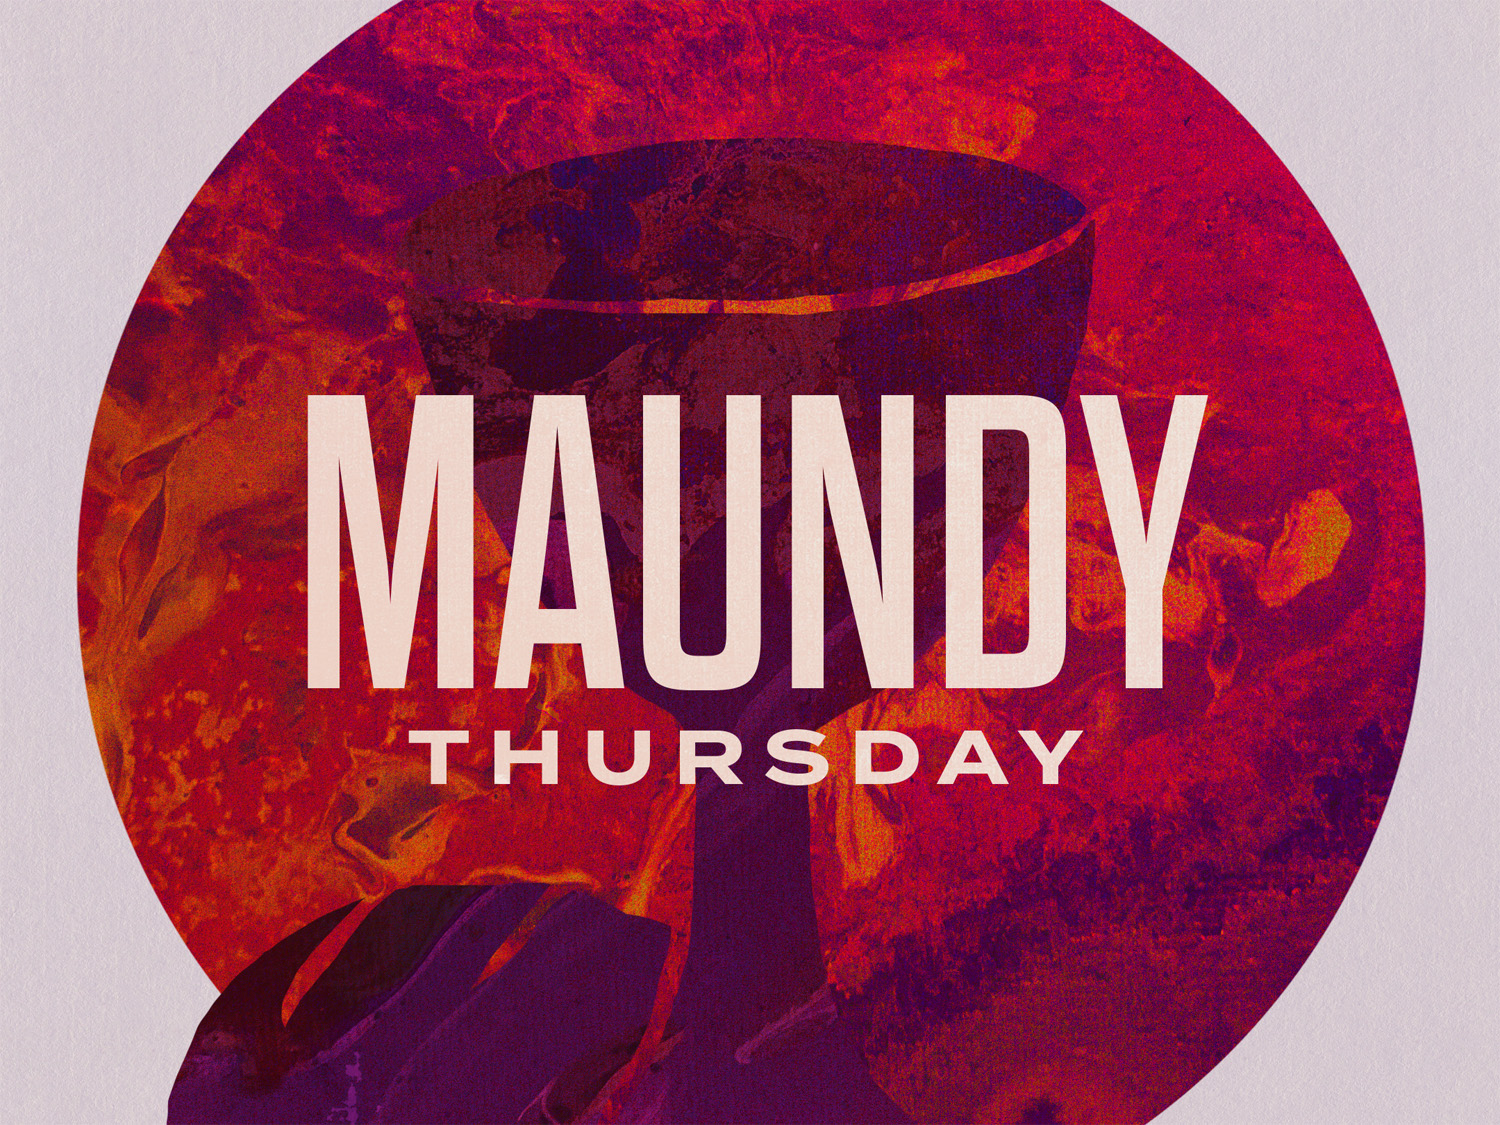 maundy_thursday-title-1-Standard 4x3